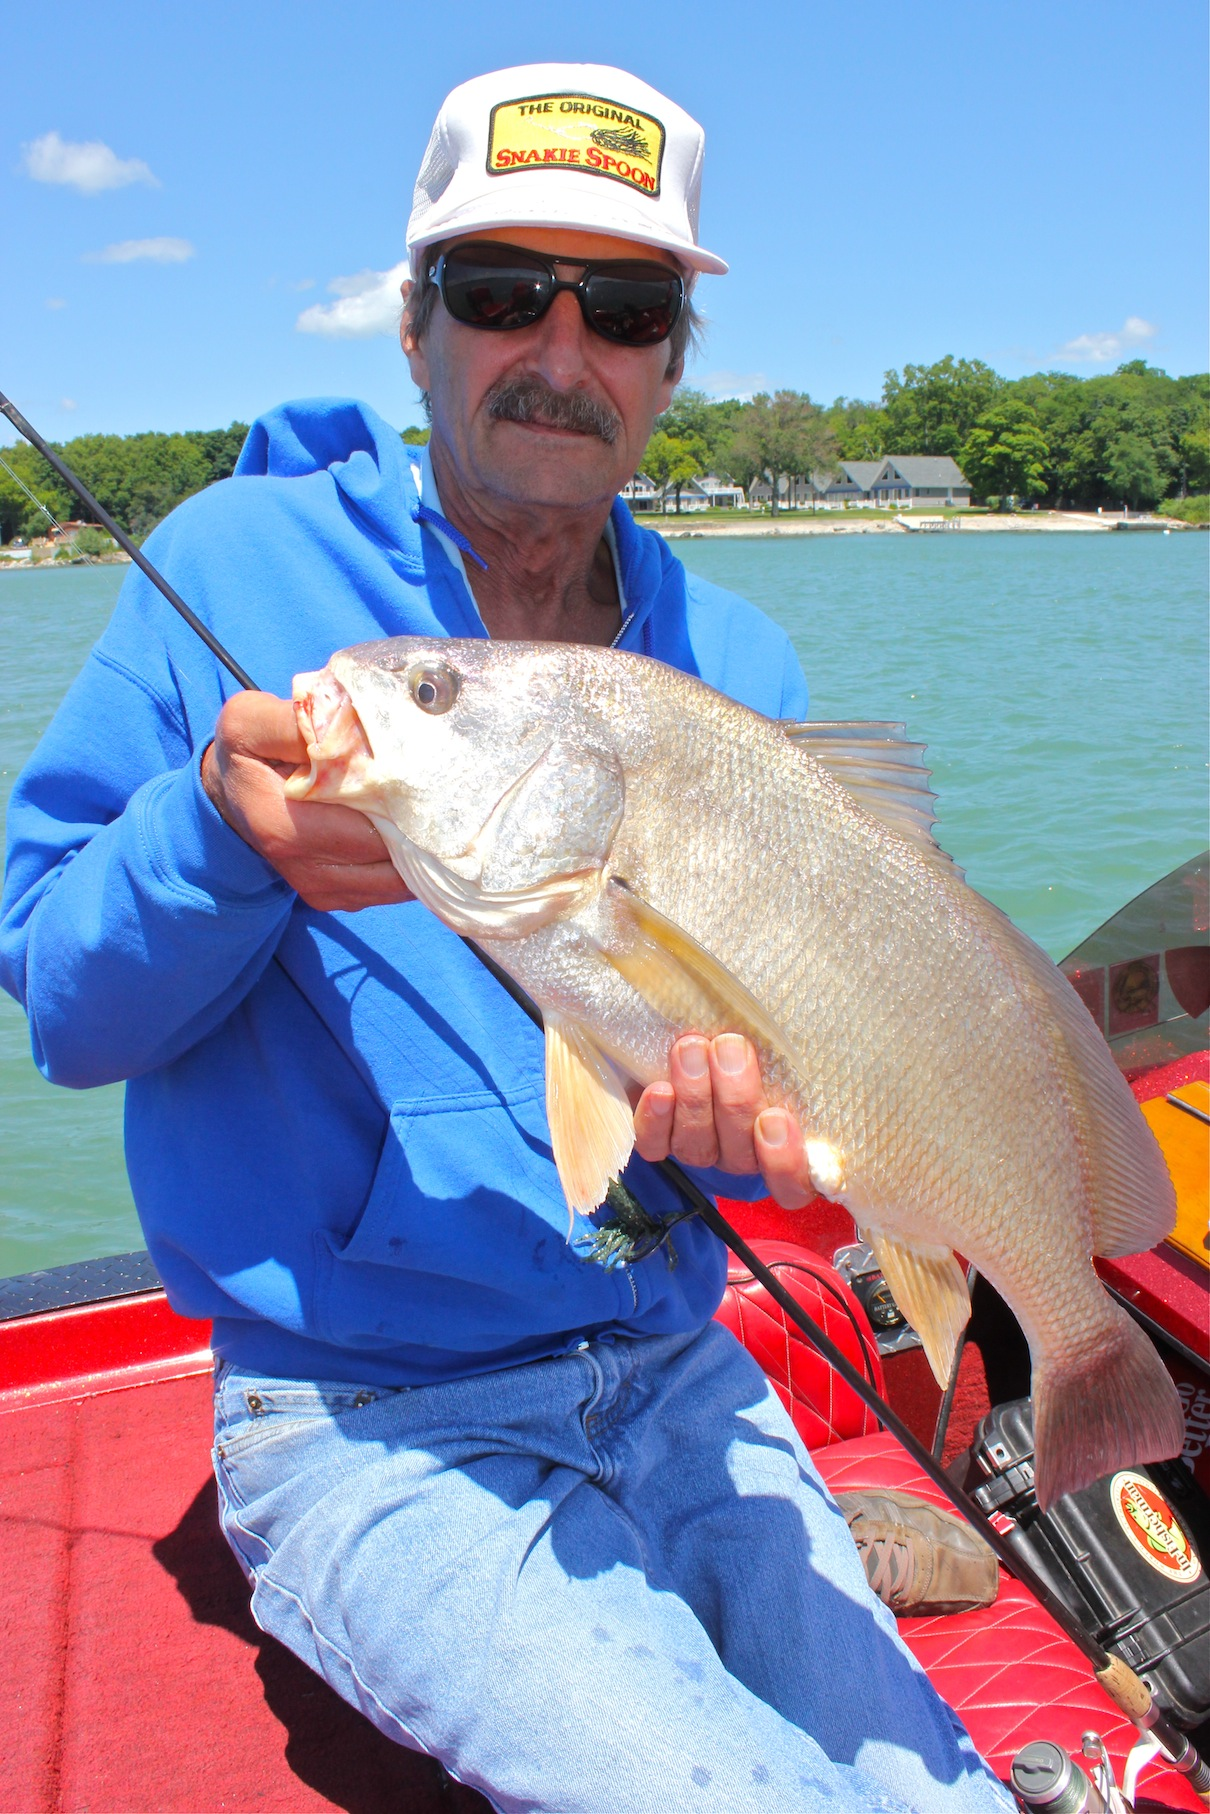 The freshwater drum (Aplodinotus grunniens to you Latin-speaking folks out there) has more